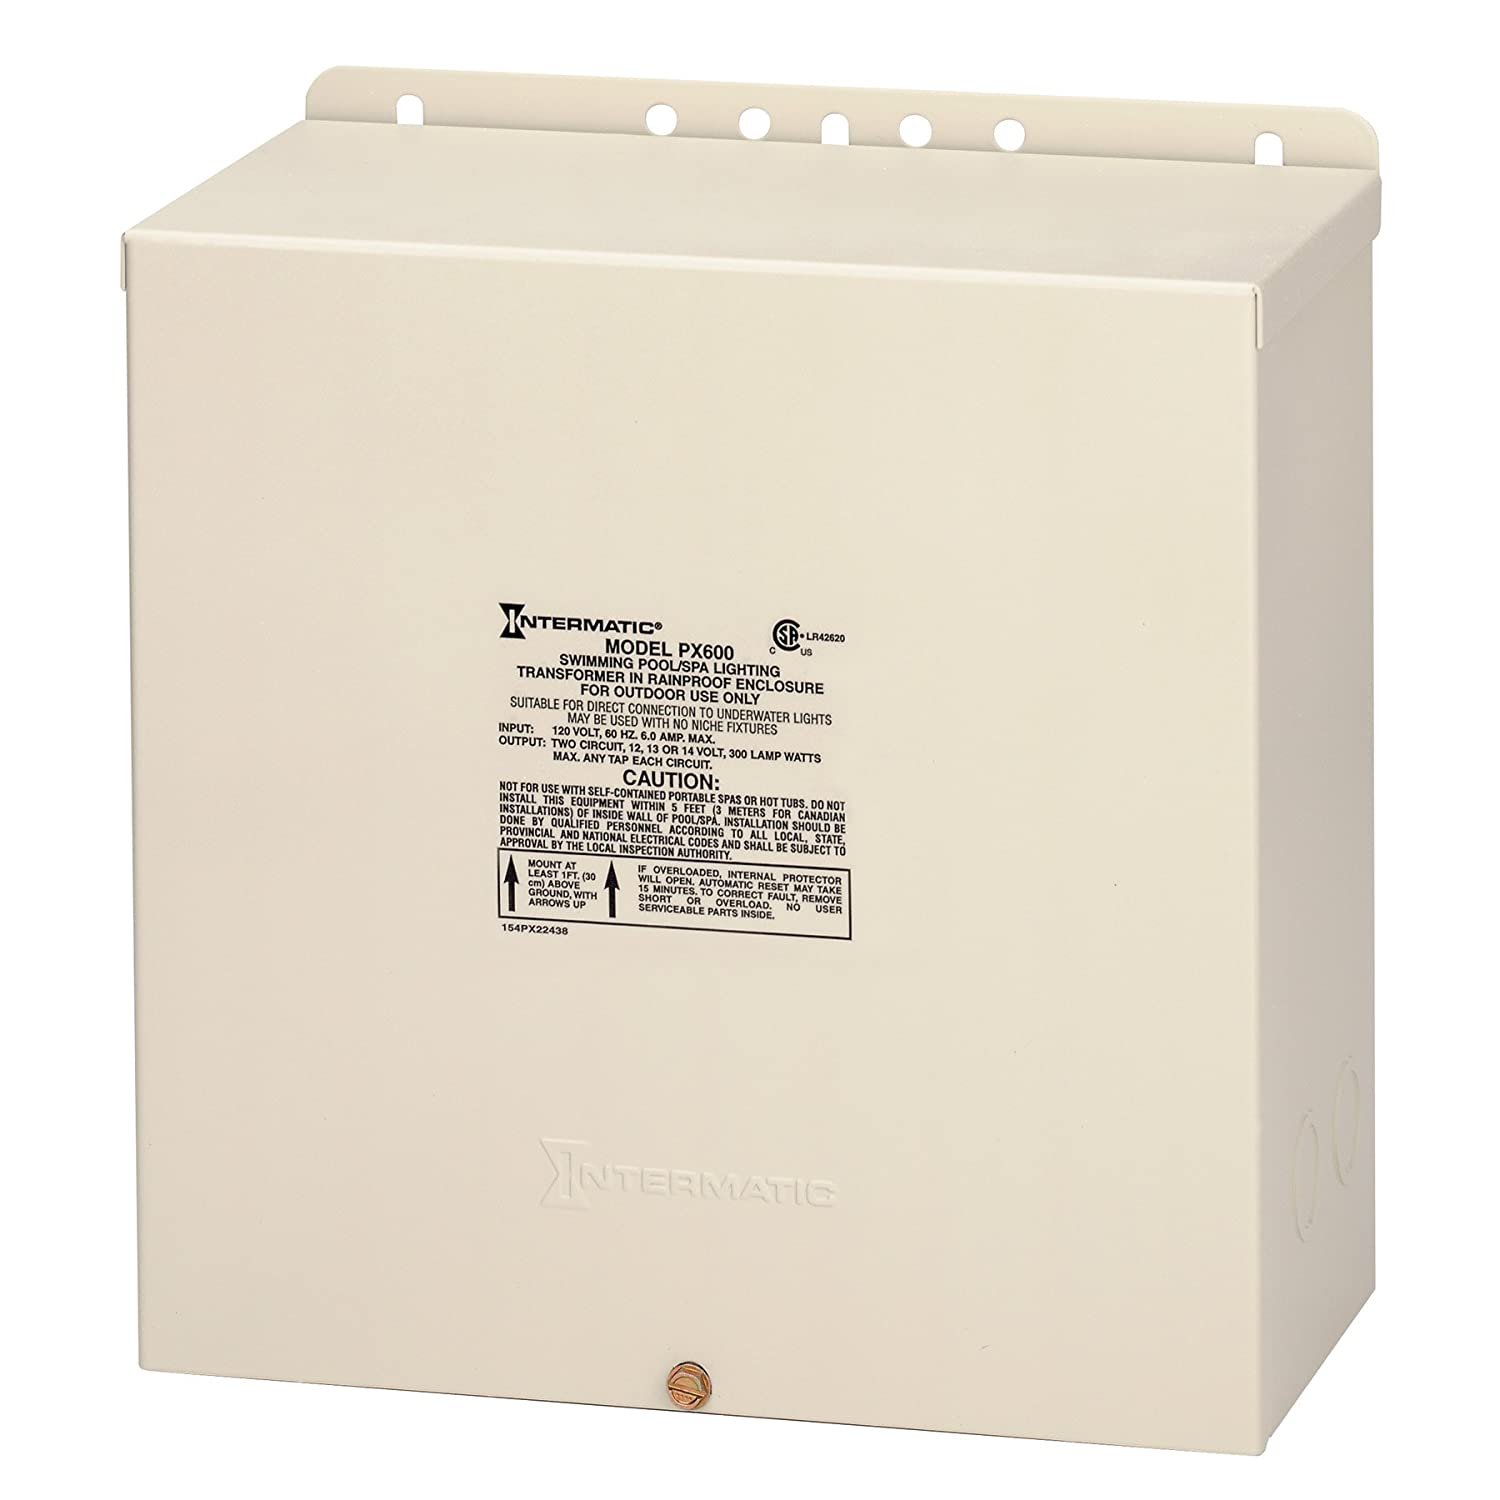 Intermatic PX600 Pool Light 600 Watt Safety Transformer Beige